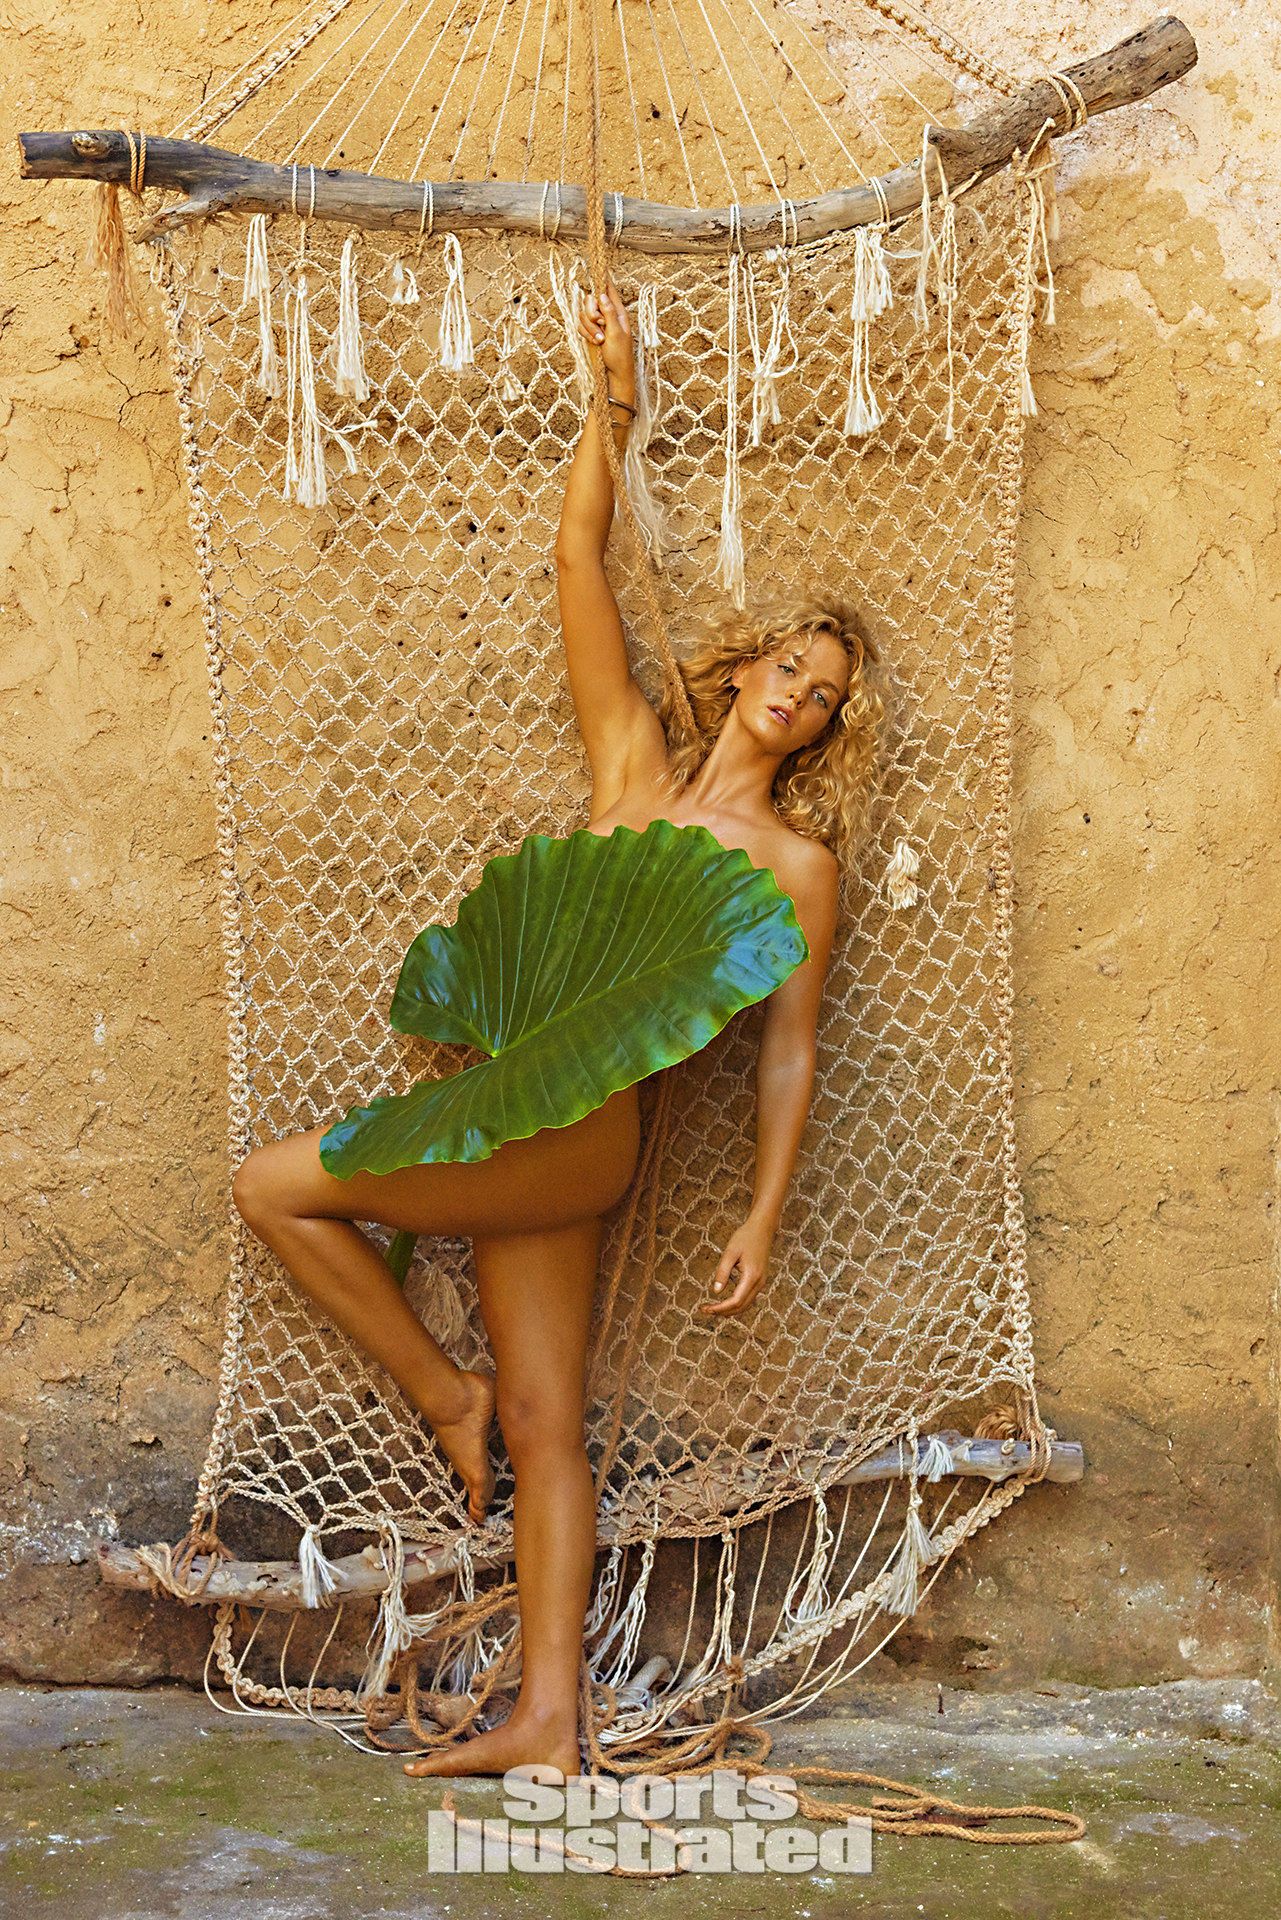 Erin Heatherton was photographed by Ruven Afanador in Zanzibar.